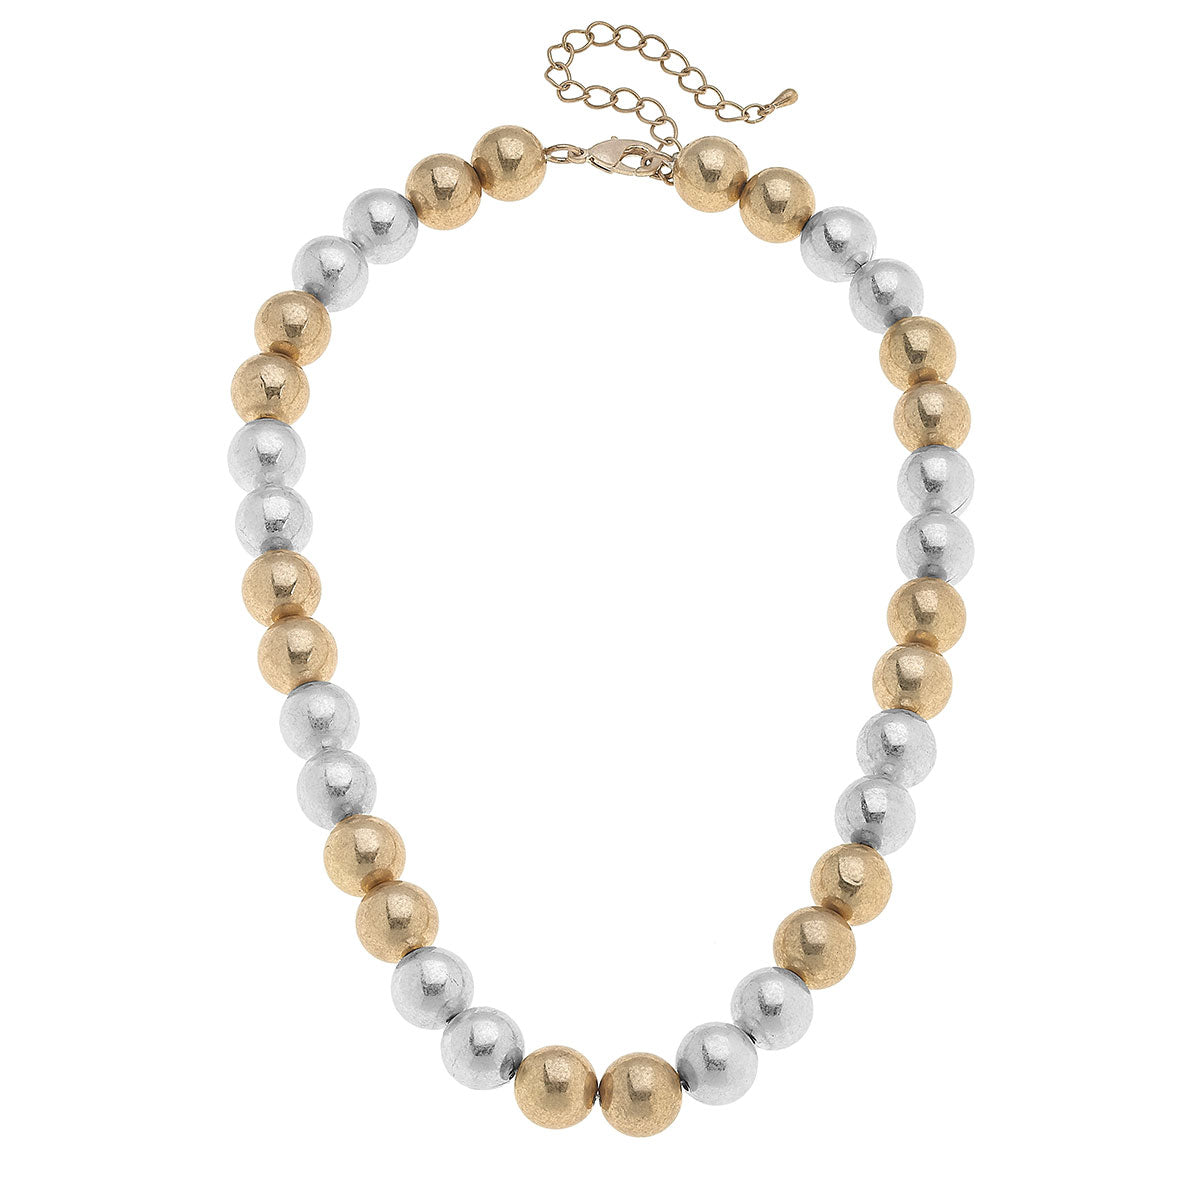 Hannah Ball Bead Necklace in Mixed Metals